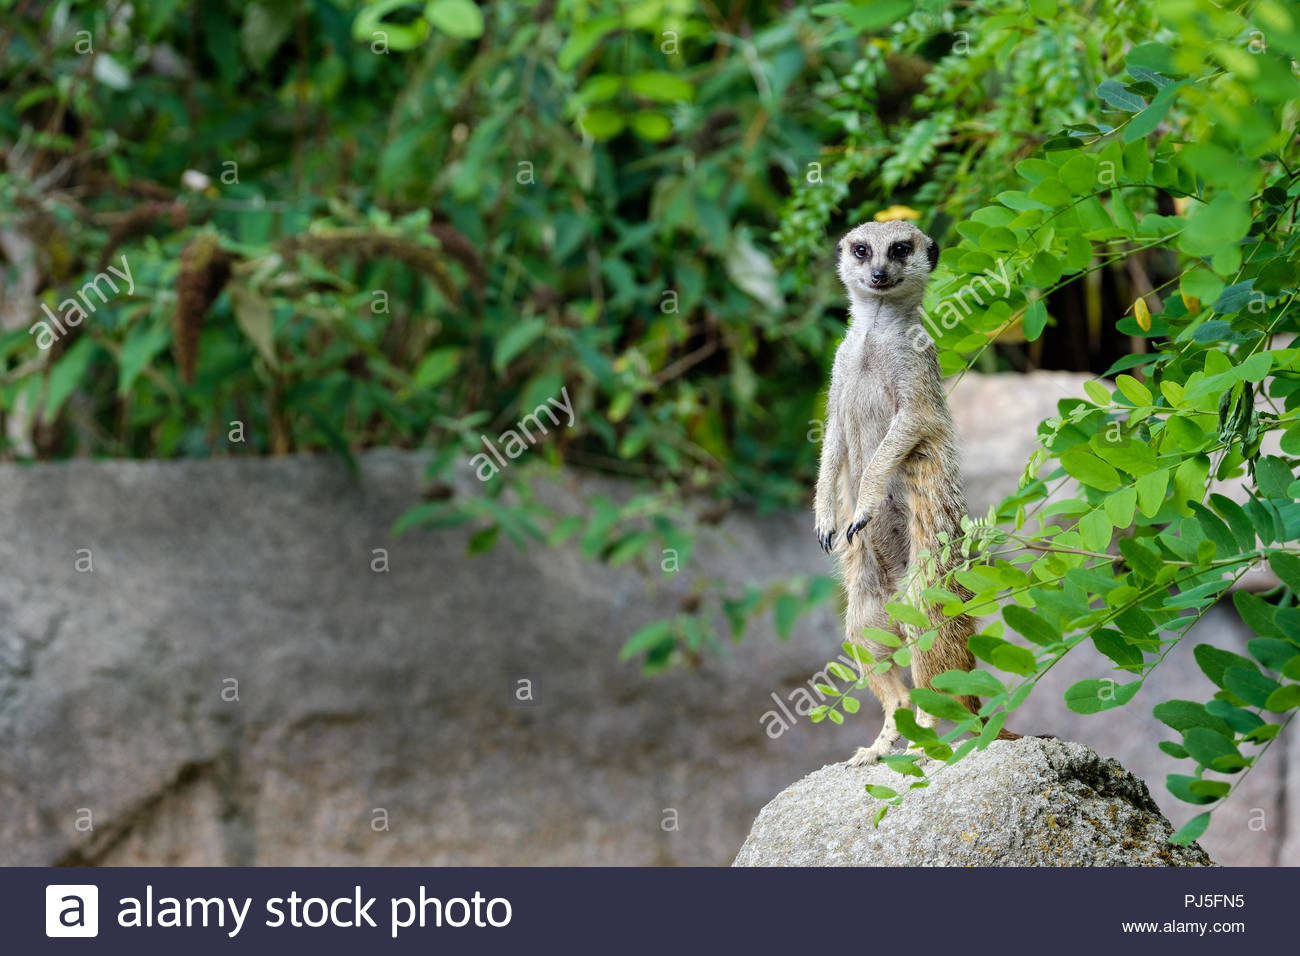 A meerkat on the lookout. - Stock Image